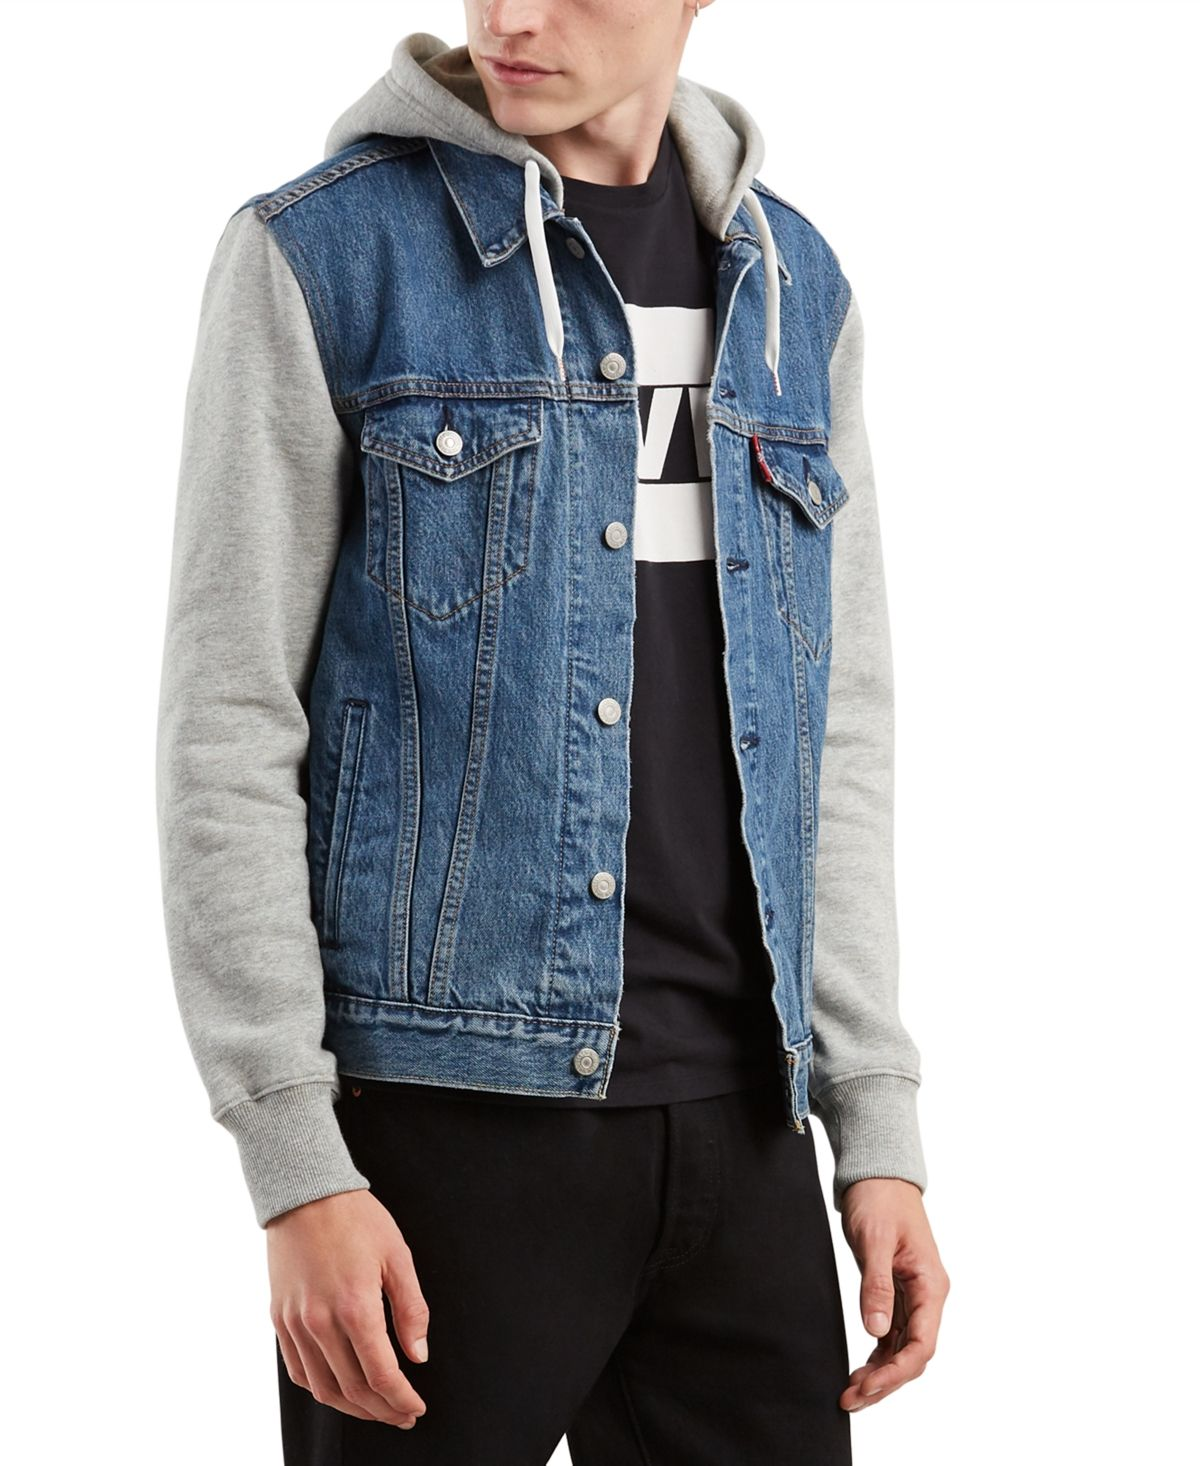 Levi's Leather Trucker Jacket Jackets, Urban outfitters